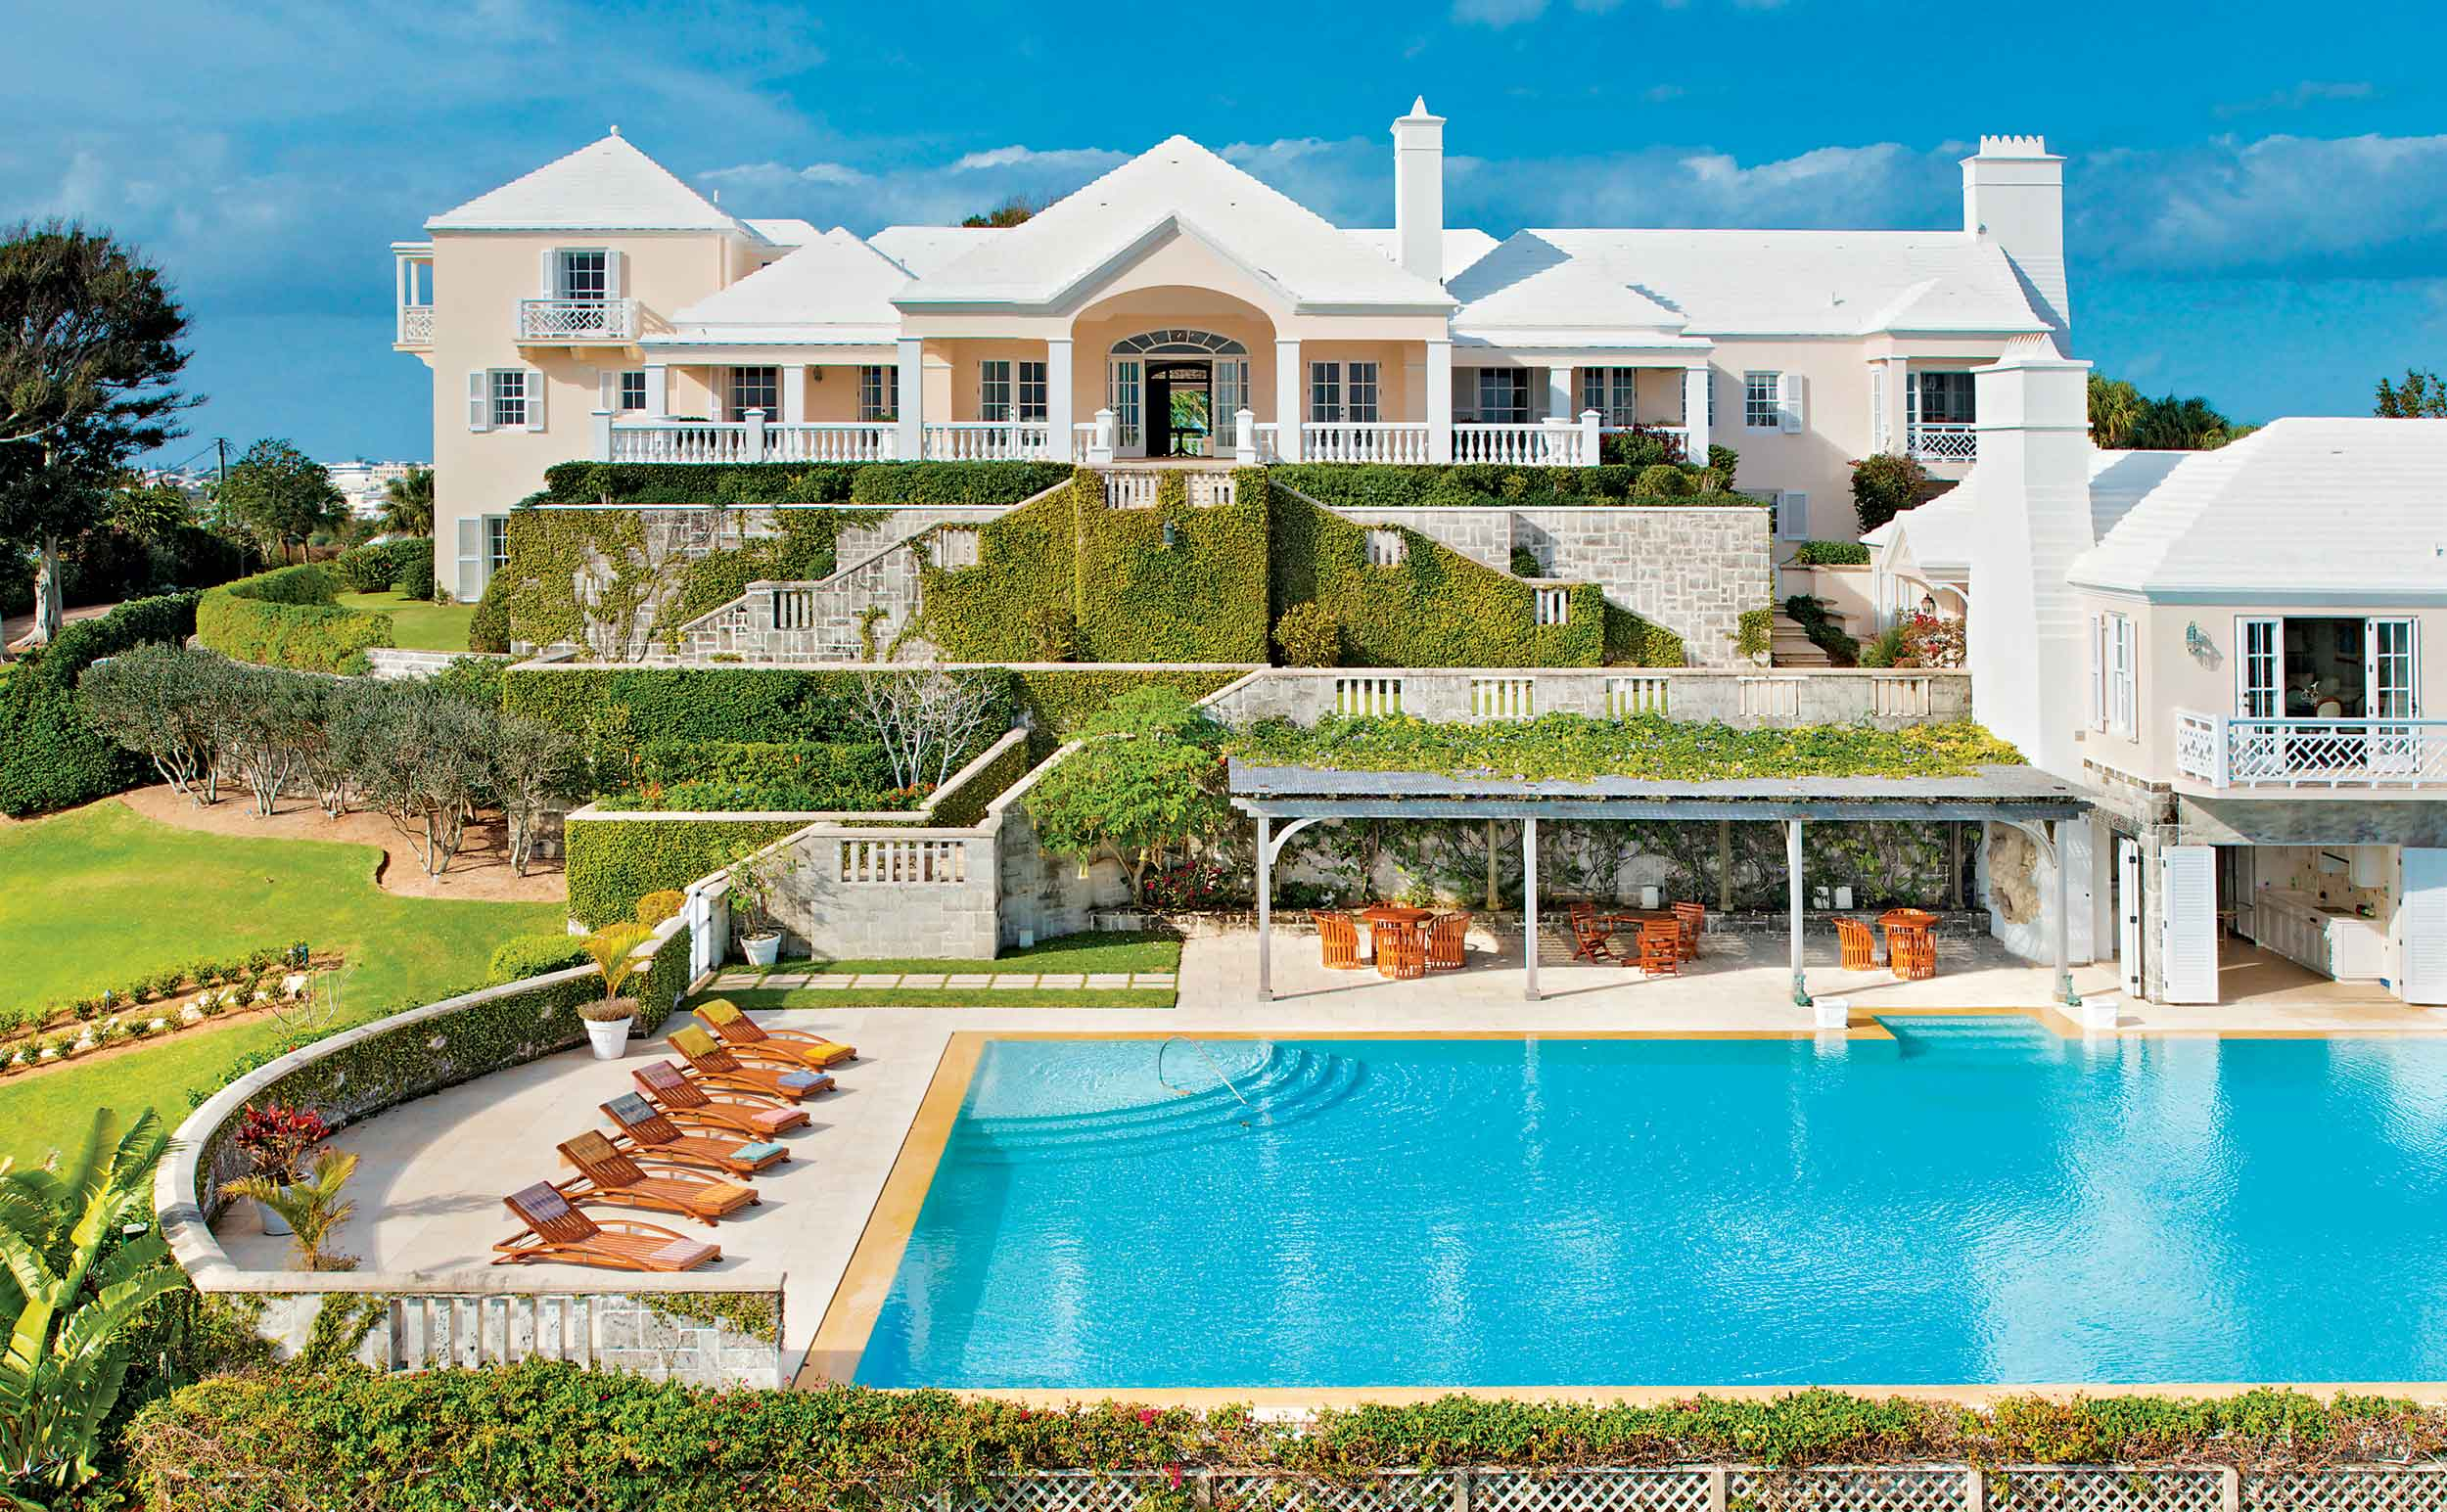 Chelston, a 14-acre beachfront compound overlooking Grape Bay, is one of the most significant estates in the world. The private family compound is just minutes from Hamilton and includes a 10,000-square-foot main house, four cottages, a beach pavilion, pool and poolhouse, and a croquet lawn.